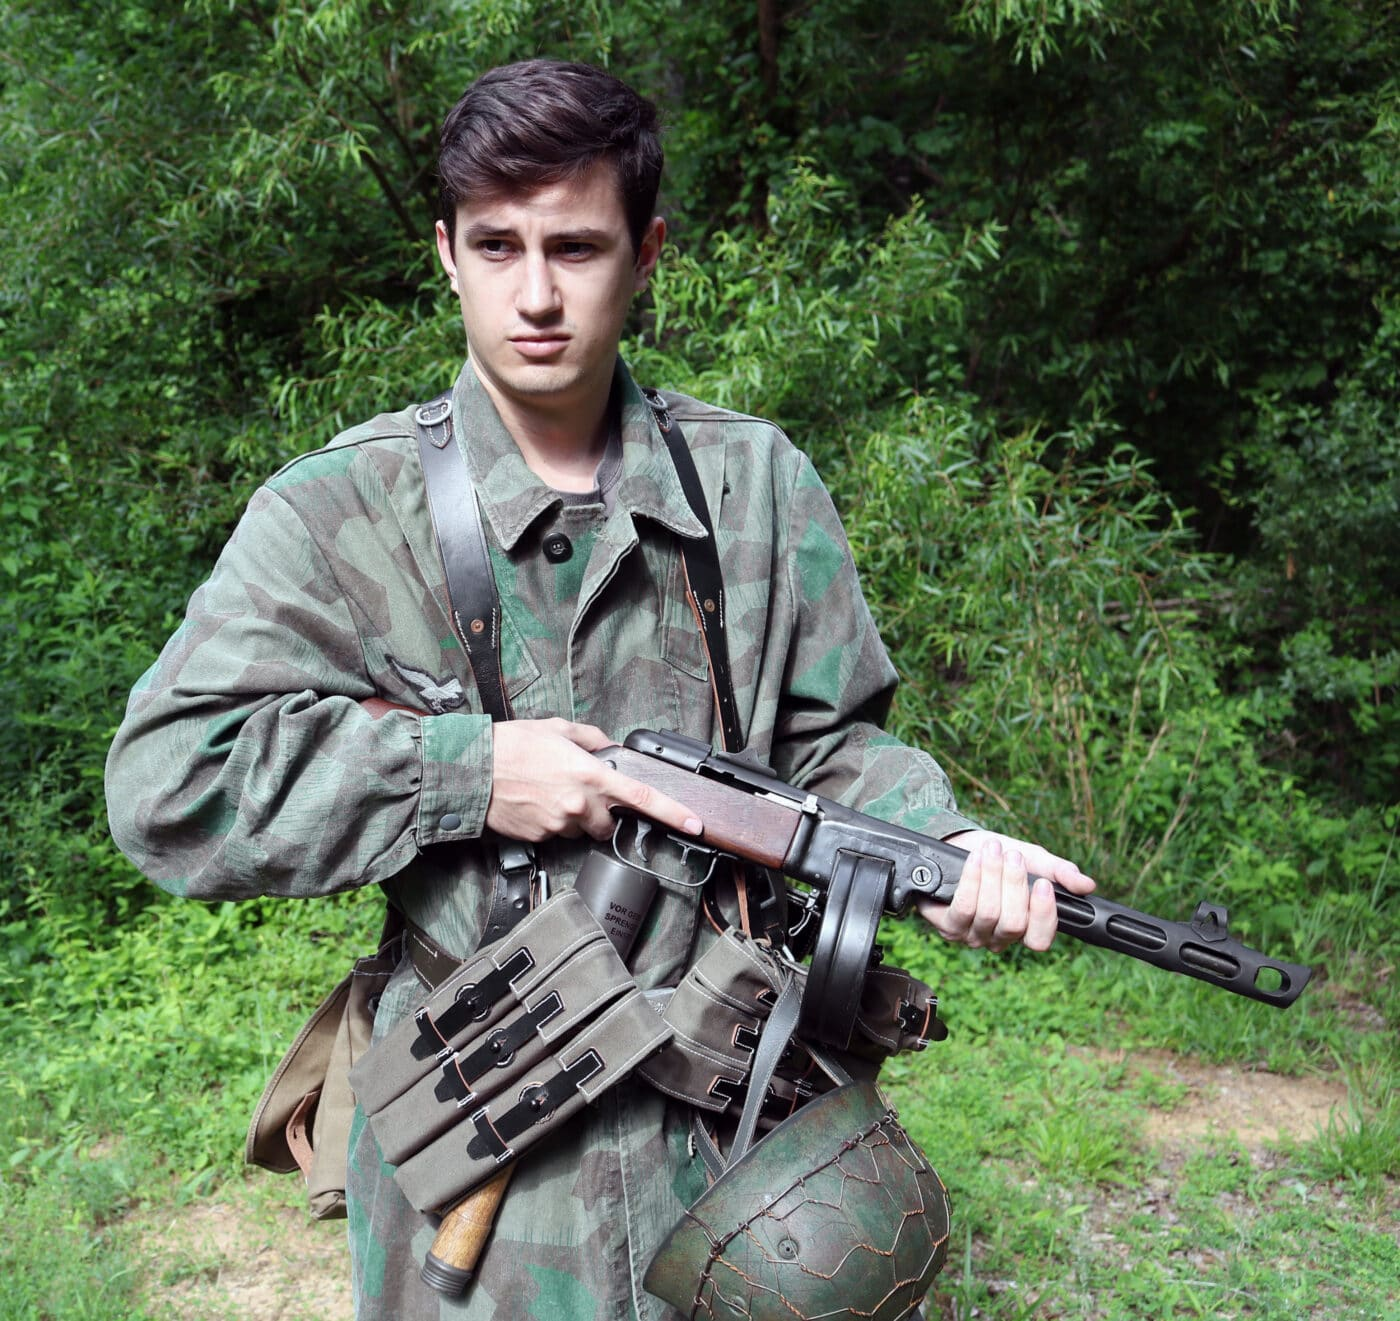 German reenactor with Russian PPSh SMG